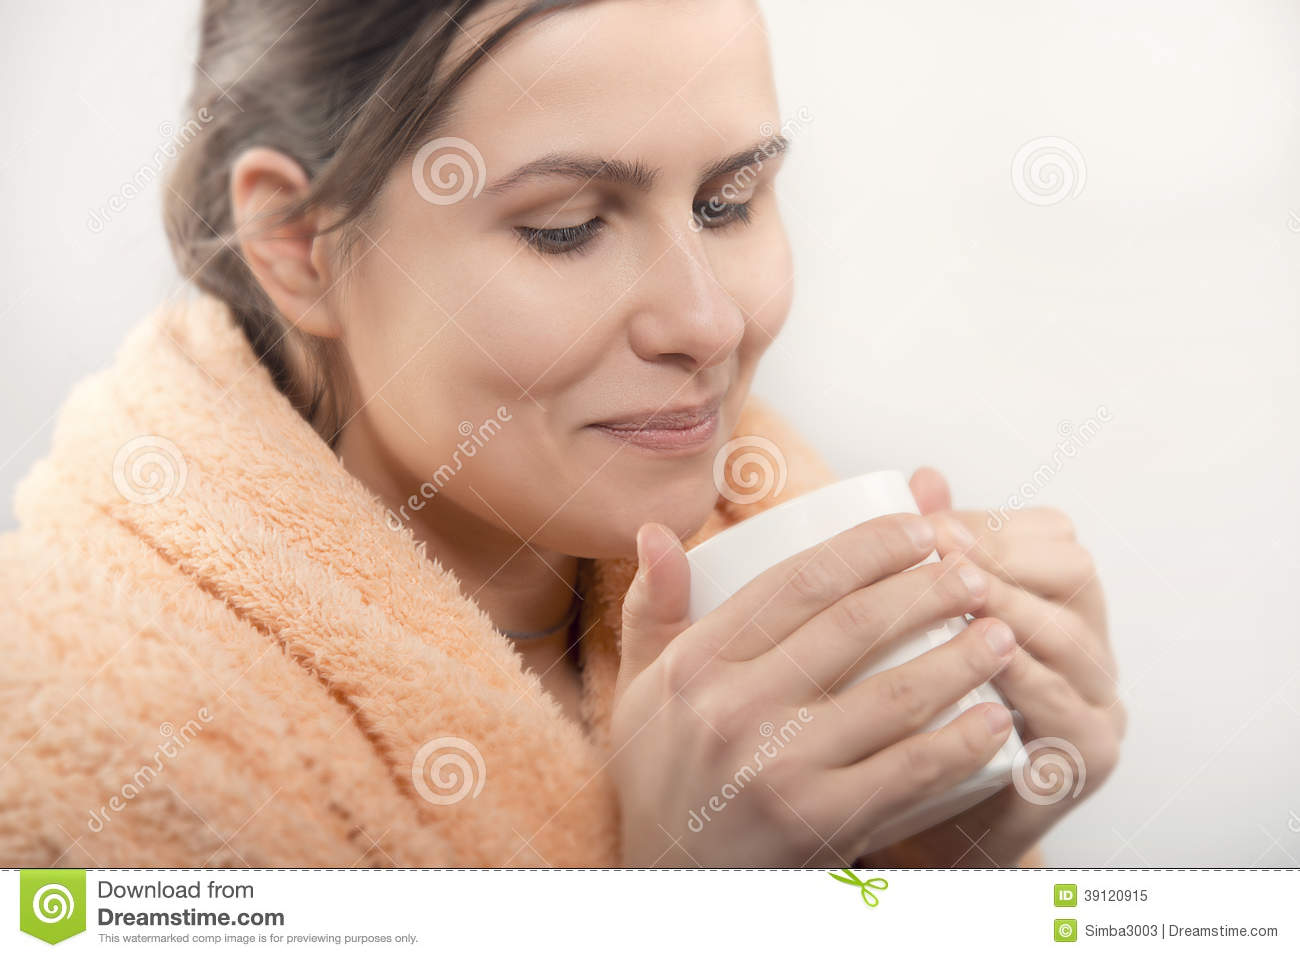 Natural beauty woman having cup of coffee or tea